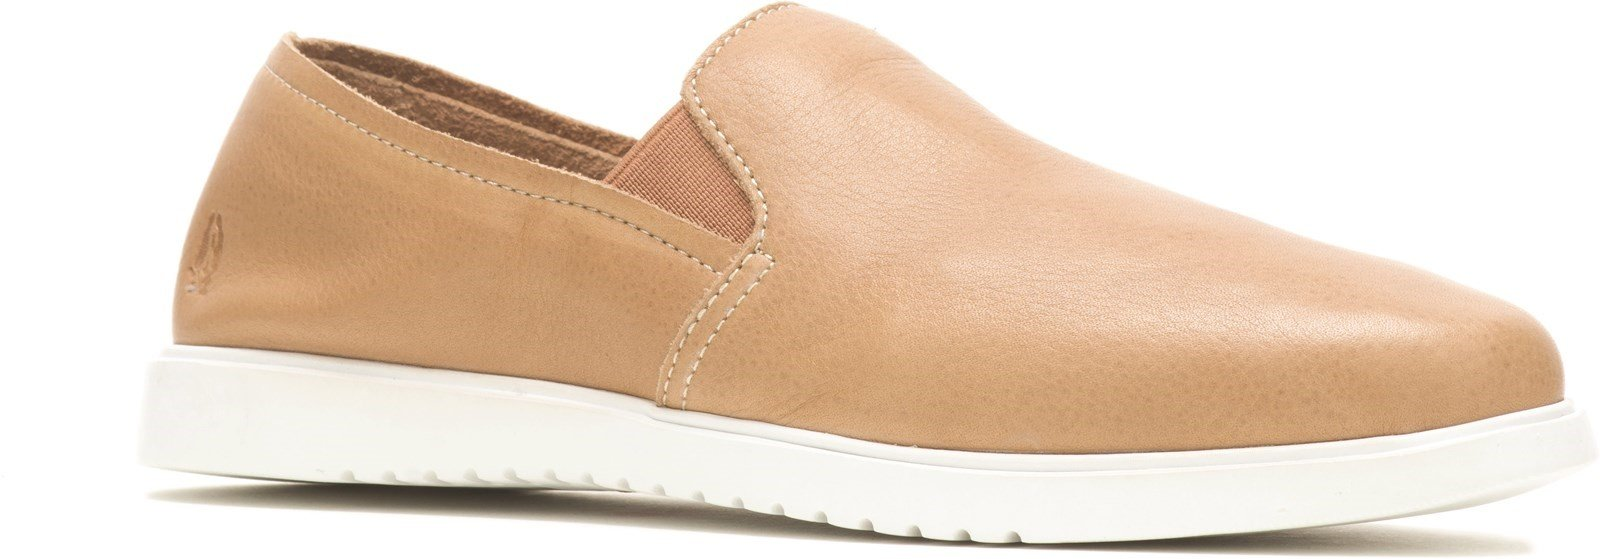 Hush Puppies Women's Everyday Trainer Various Colours 31944 - Tan 3